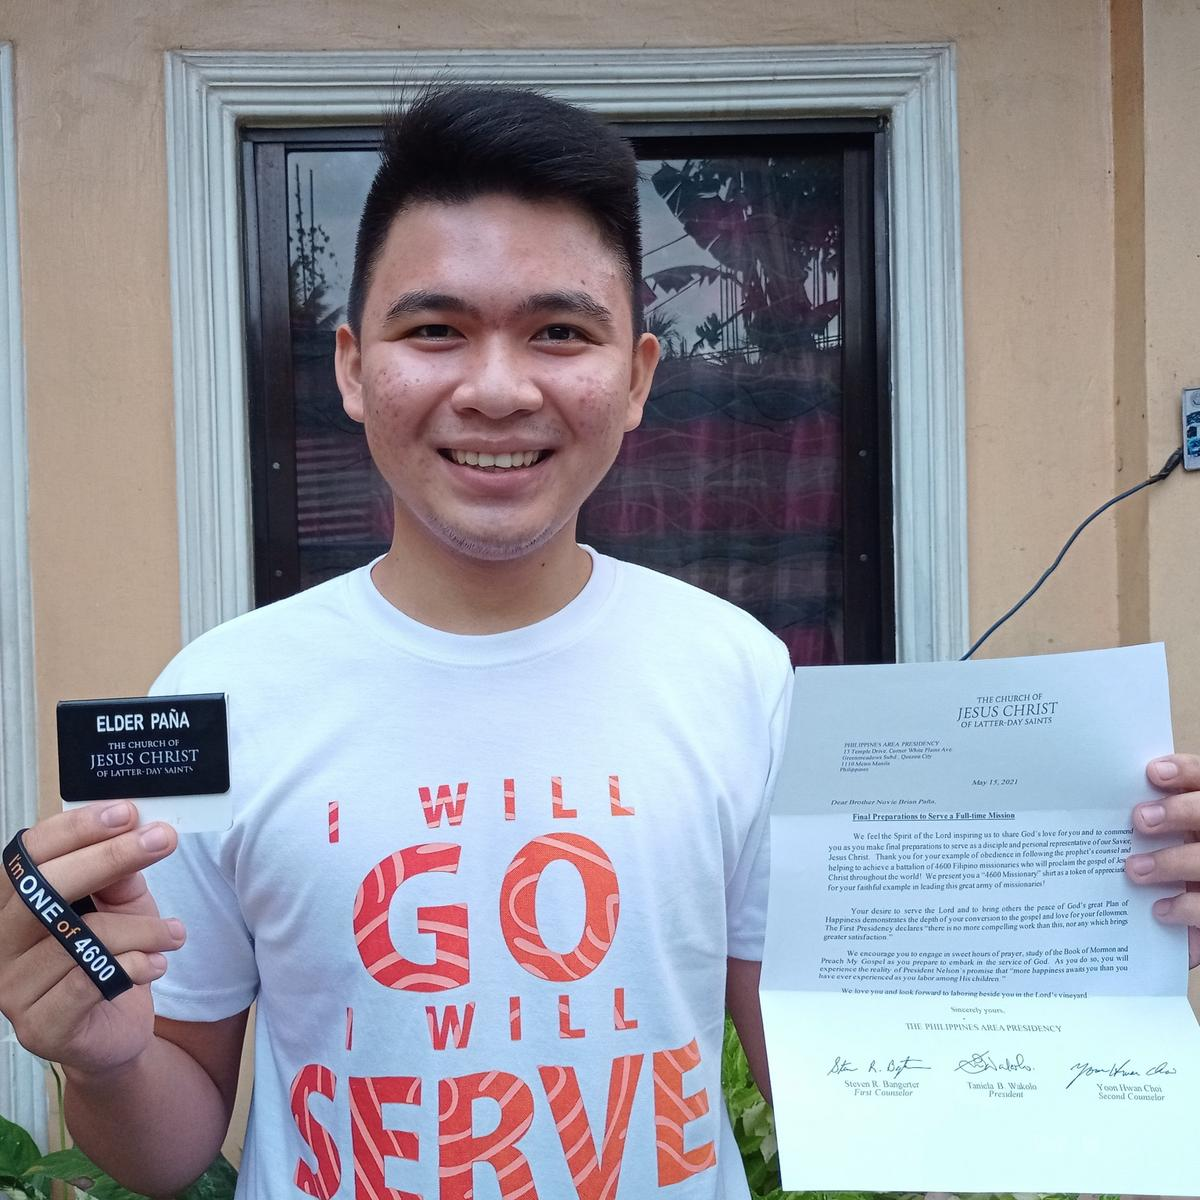 'I am Elder Paña called to serve in the Philippines Angeles Mission. I will go, I will serve. I am one of 4600.'